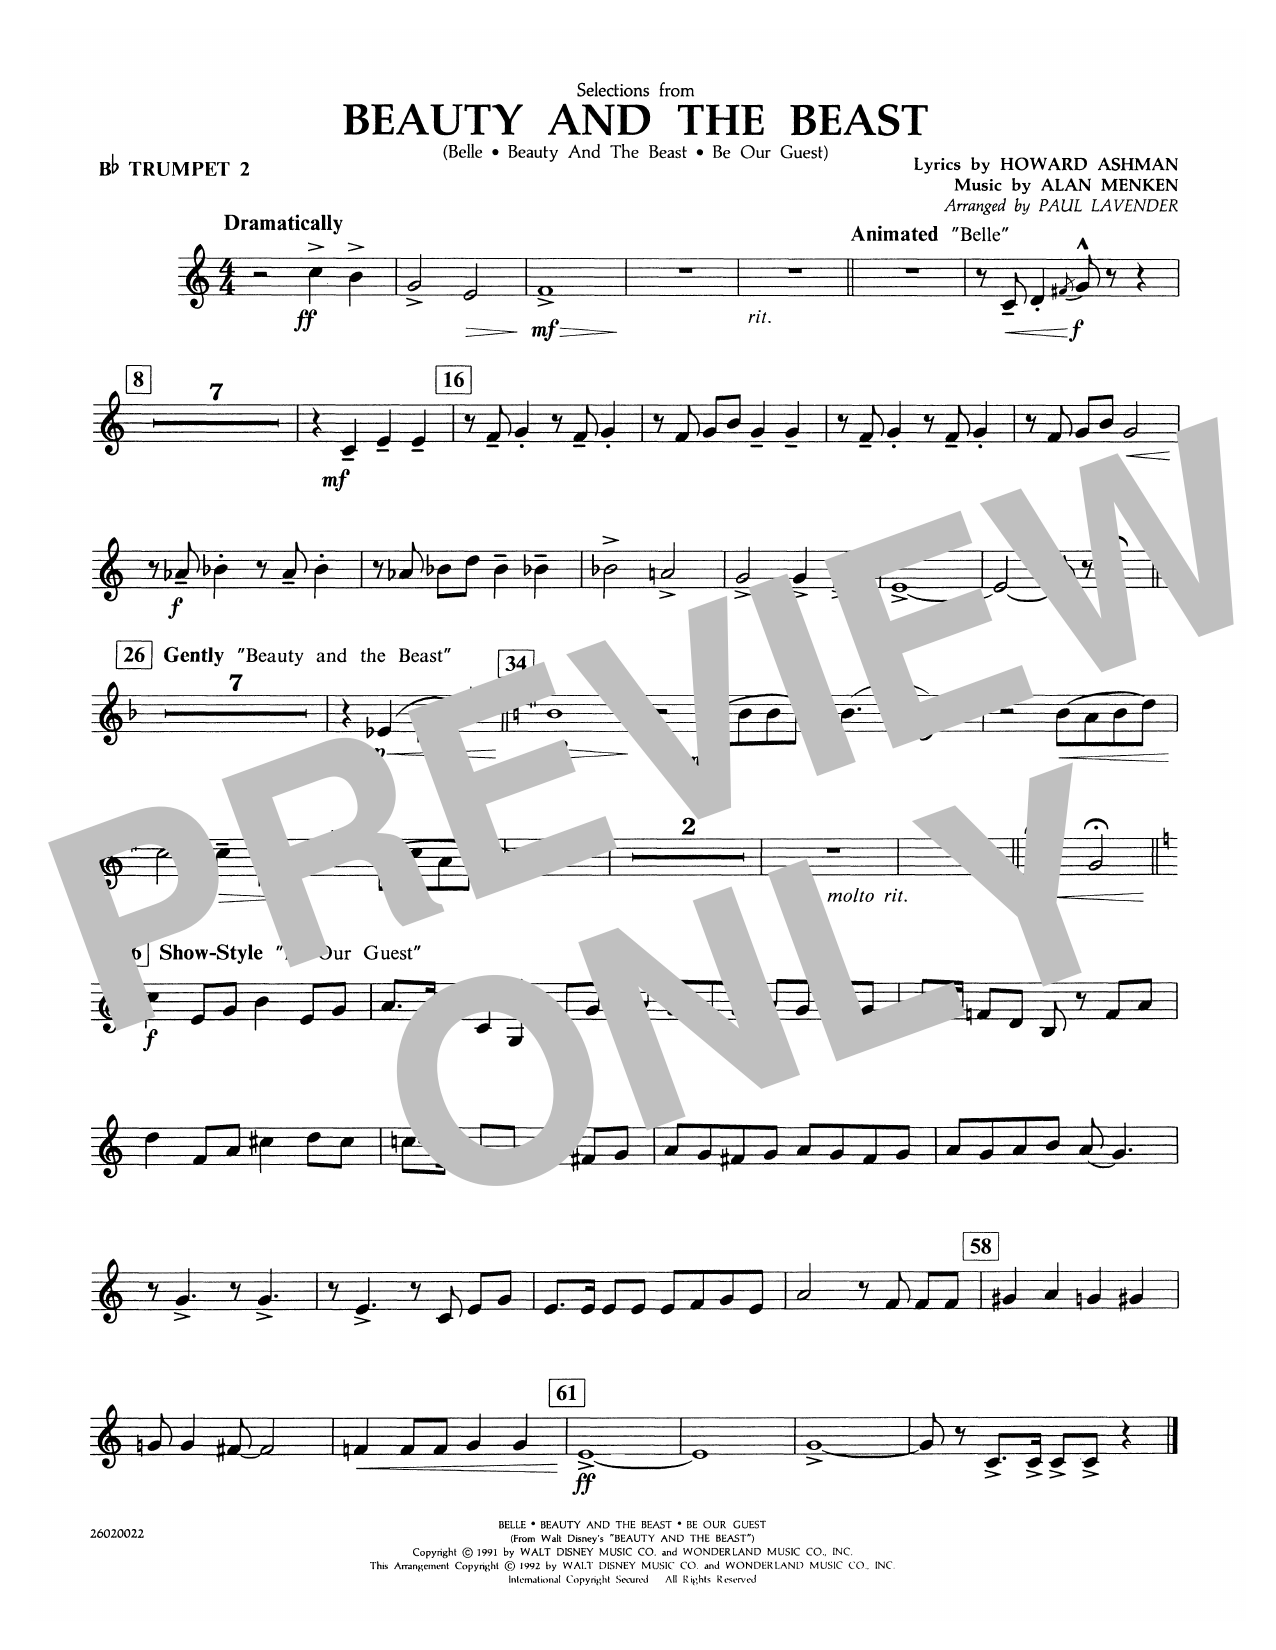 Paul Lavender Selections from Beauty and the Beast - Bb Trumpet 2 sheet music notes and chords. Download Printable PDF.